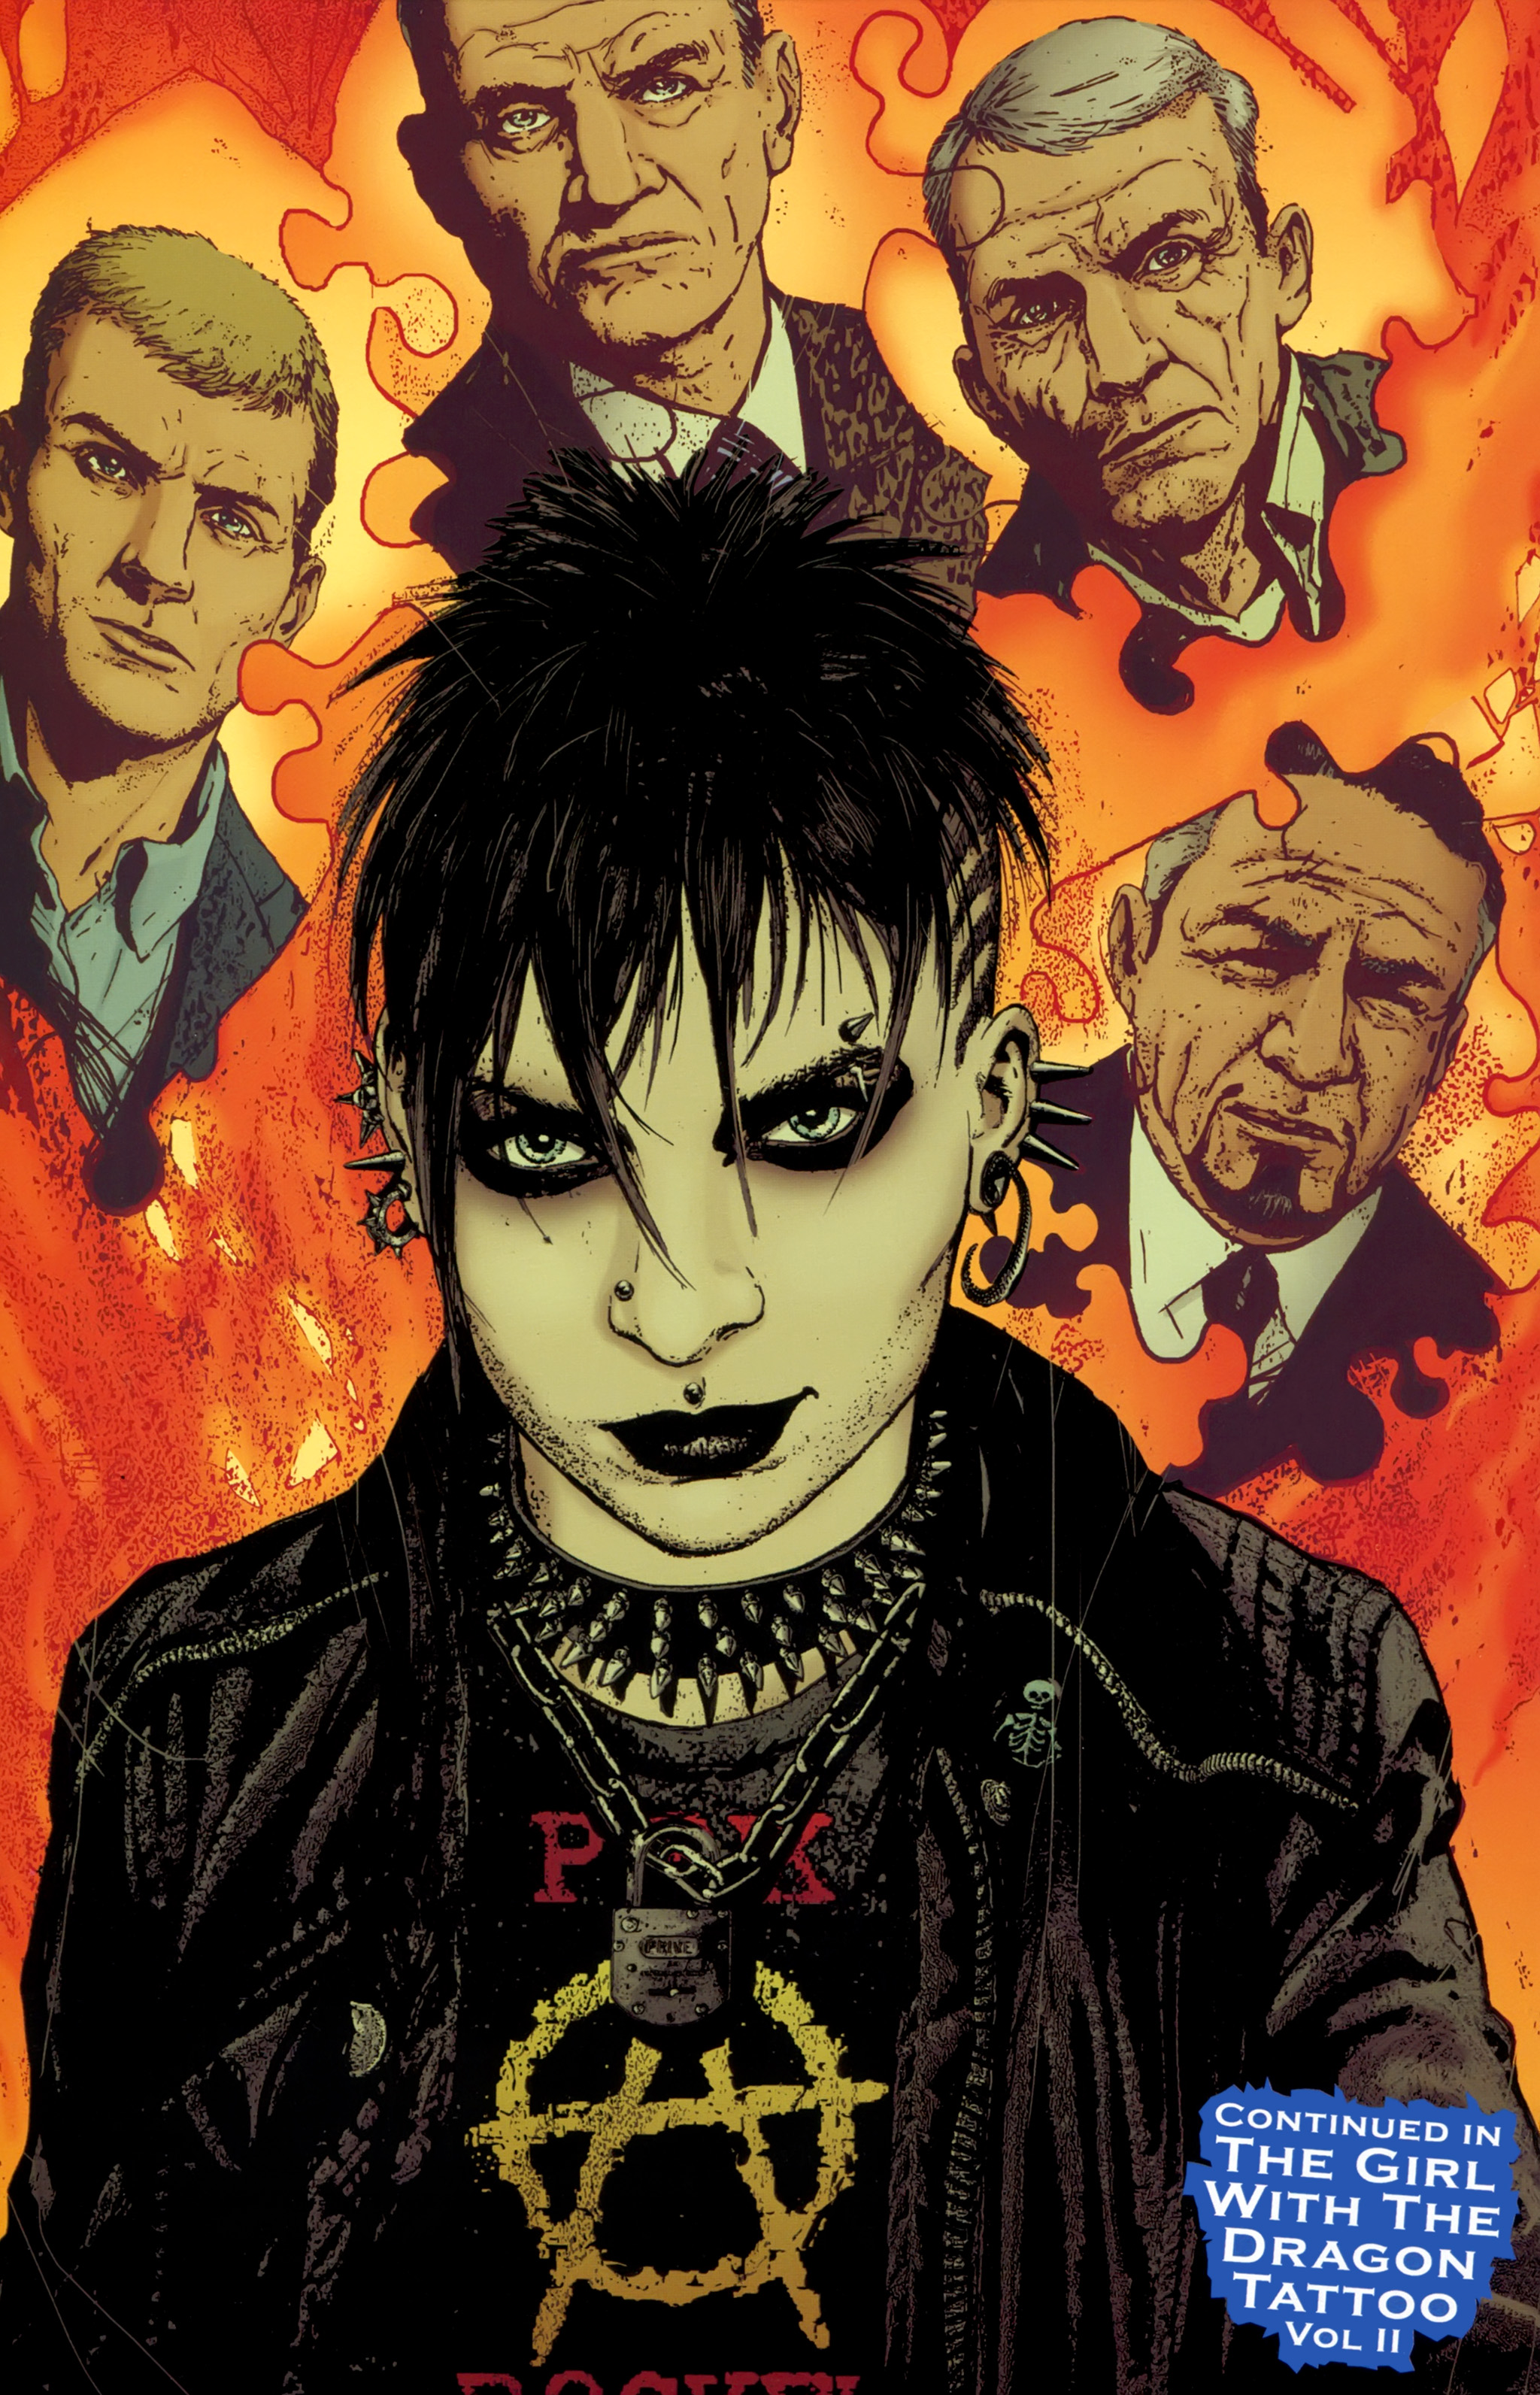 Read online The Girl With the Dragon Tattoo comic -  Issue # TPB 1 - 149